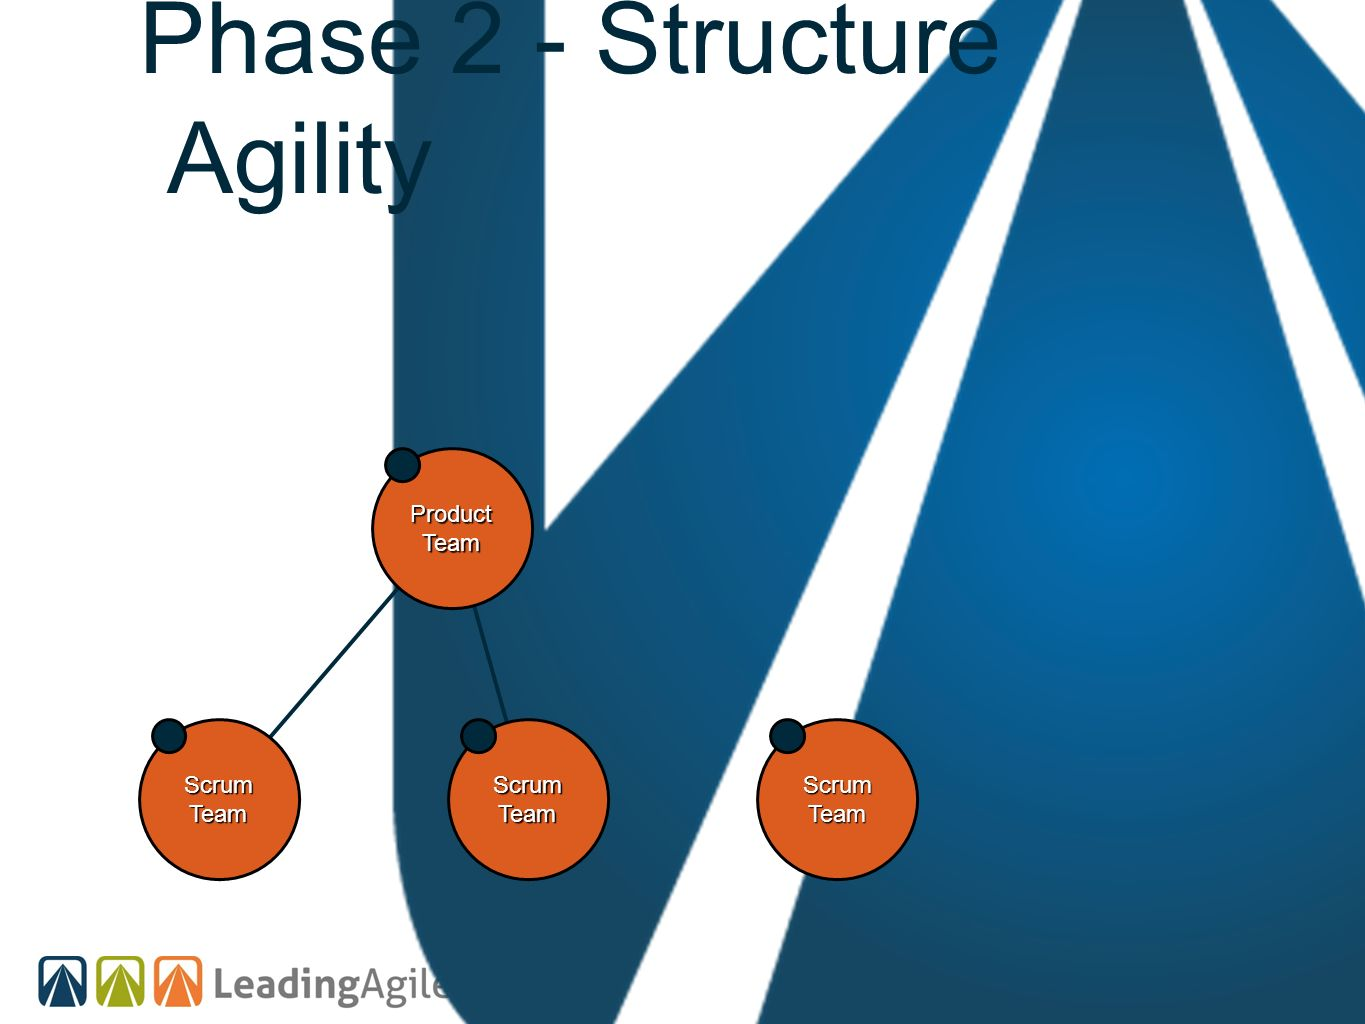 Phase 2 - Structure Agility